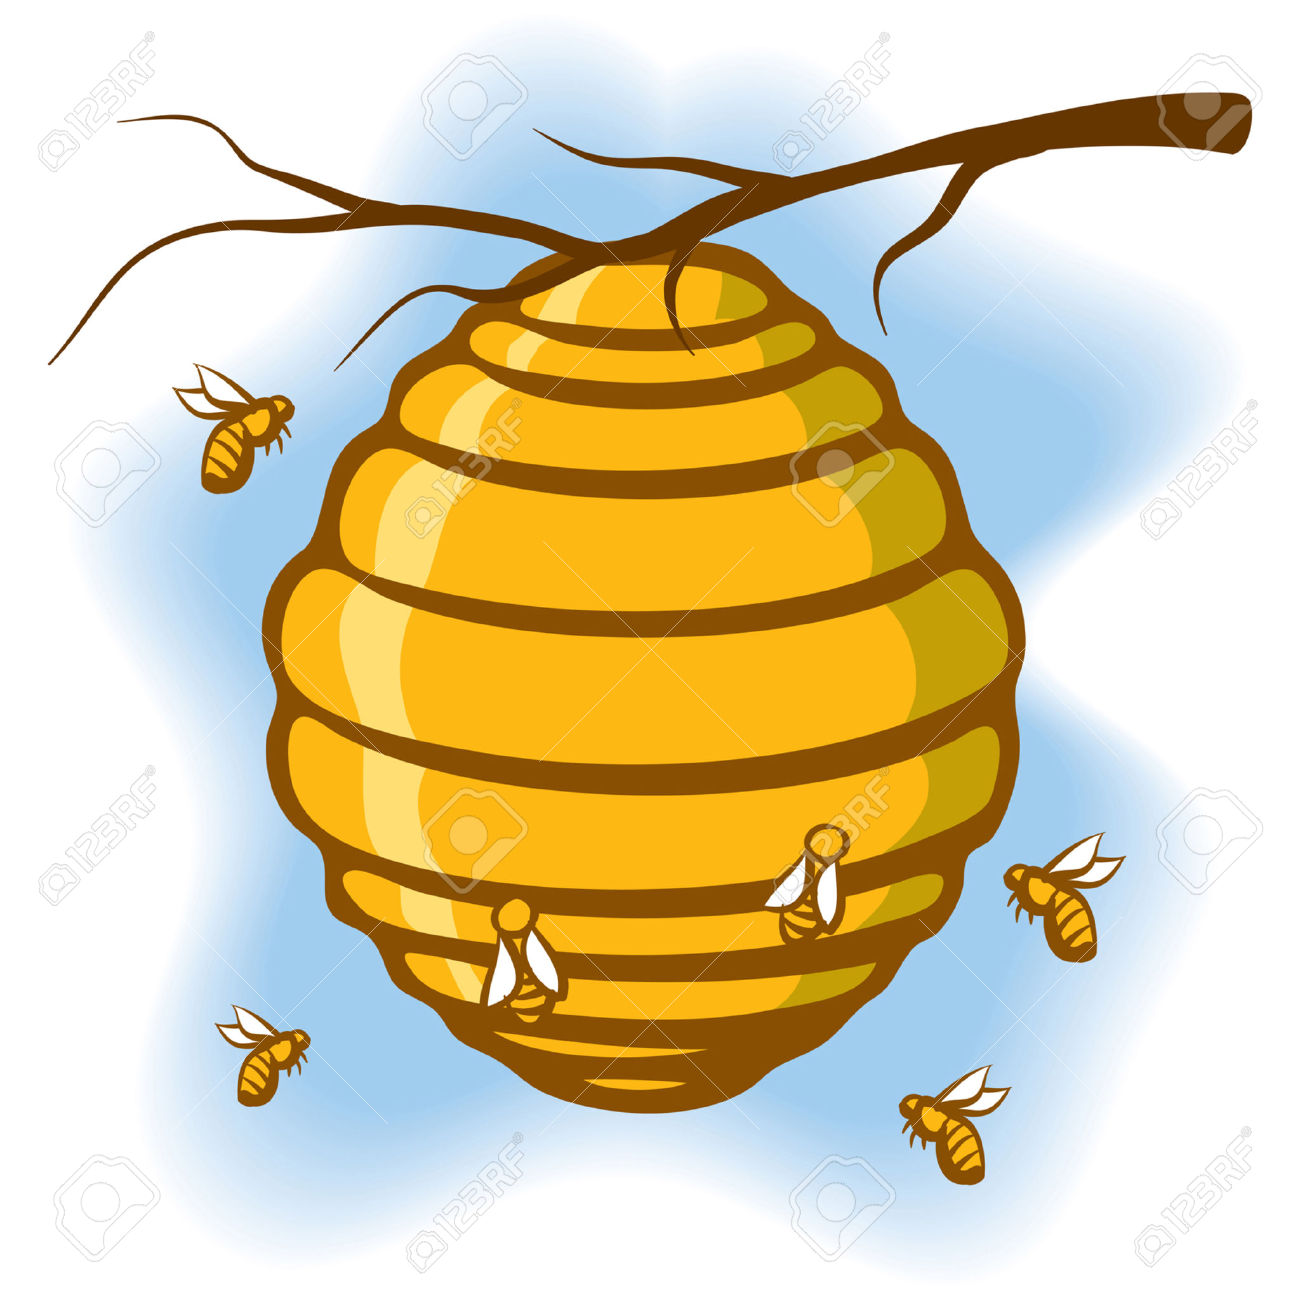 Bee Hive clipart #5, Download drawings